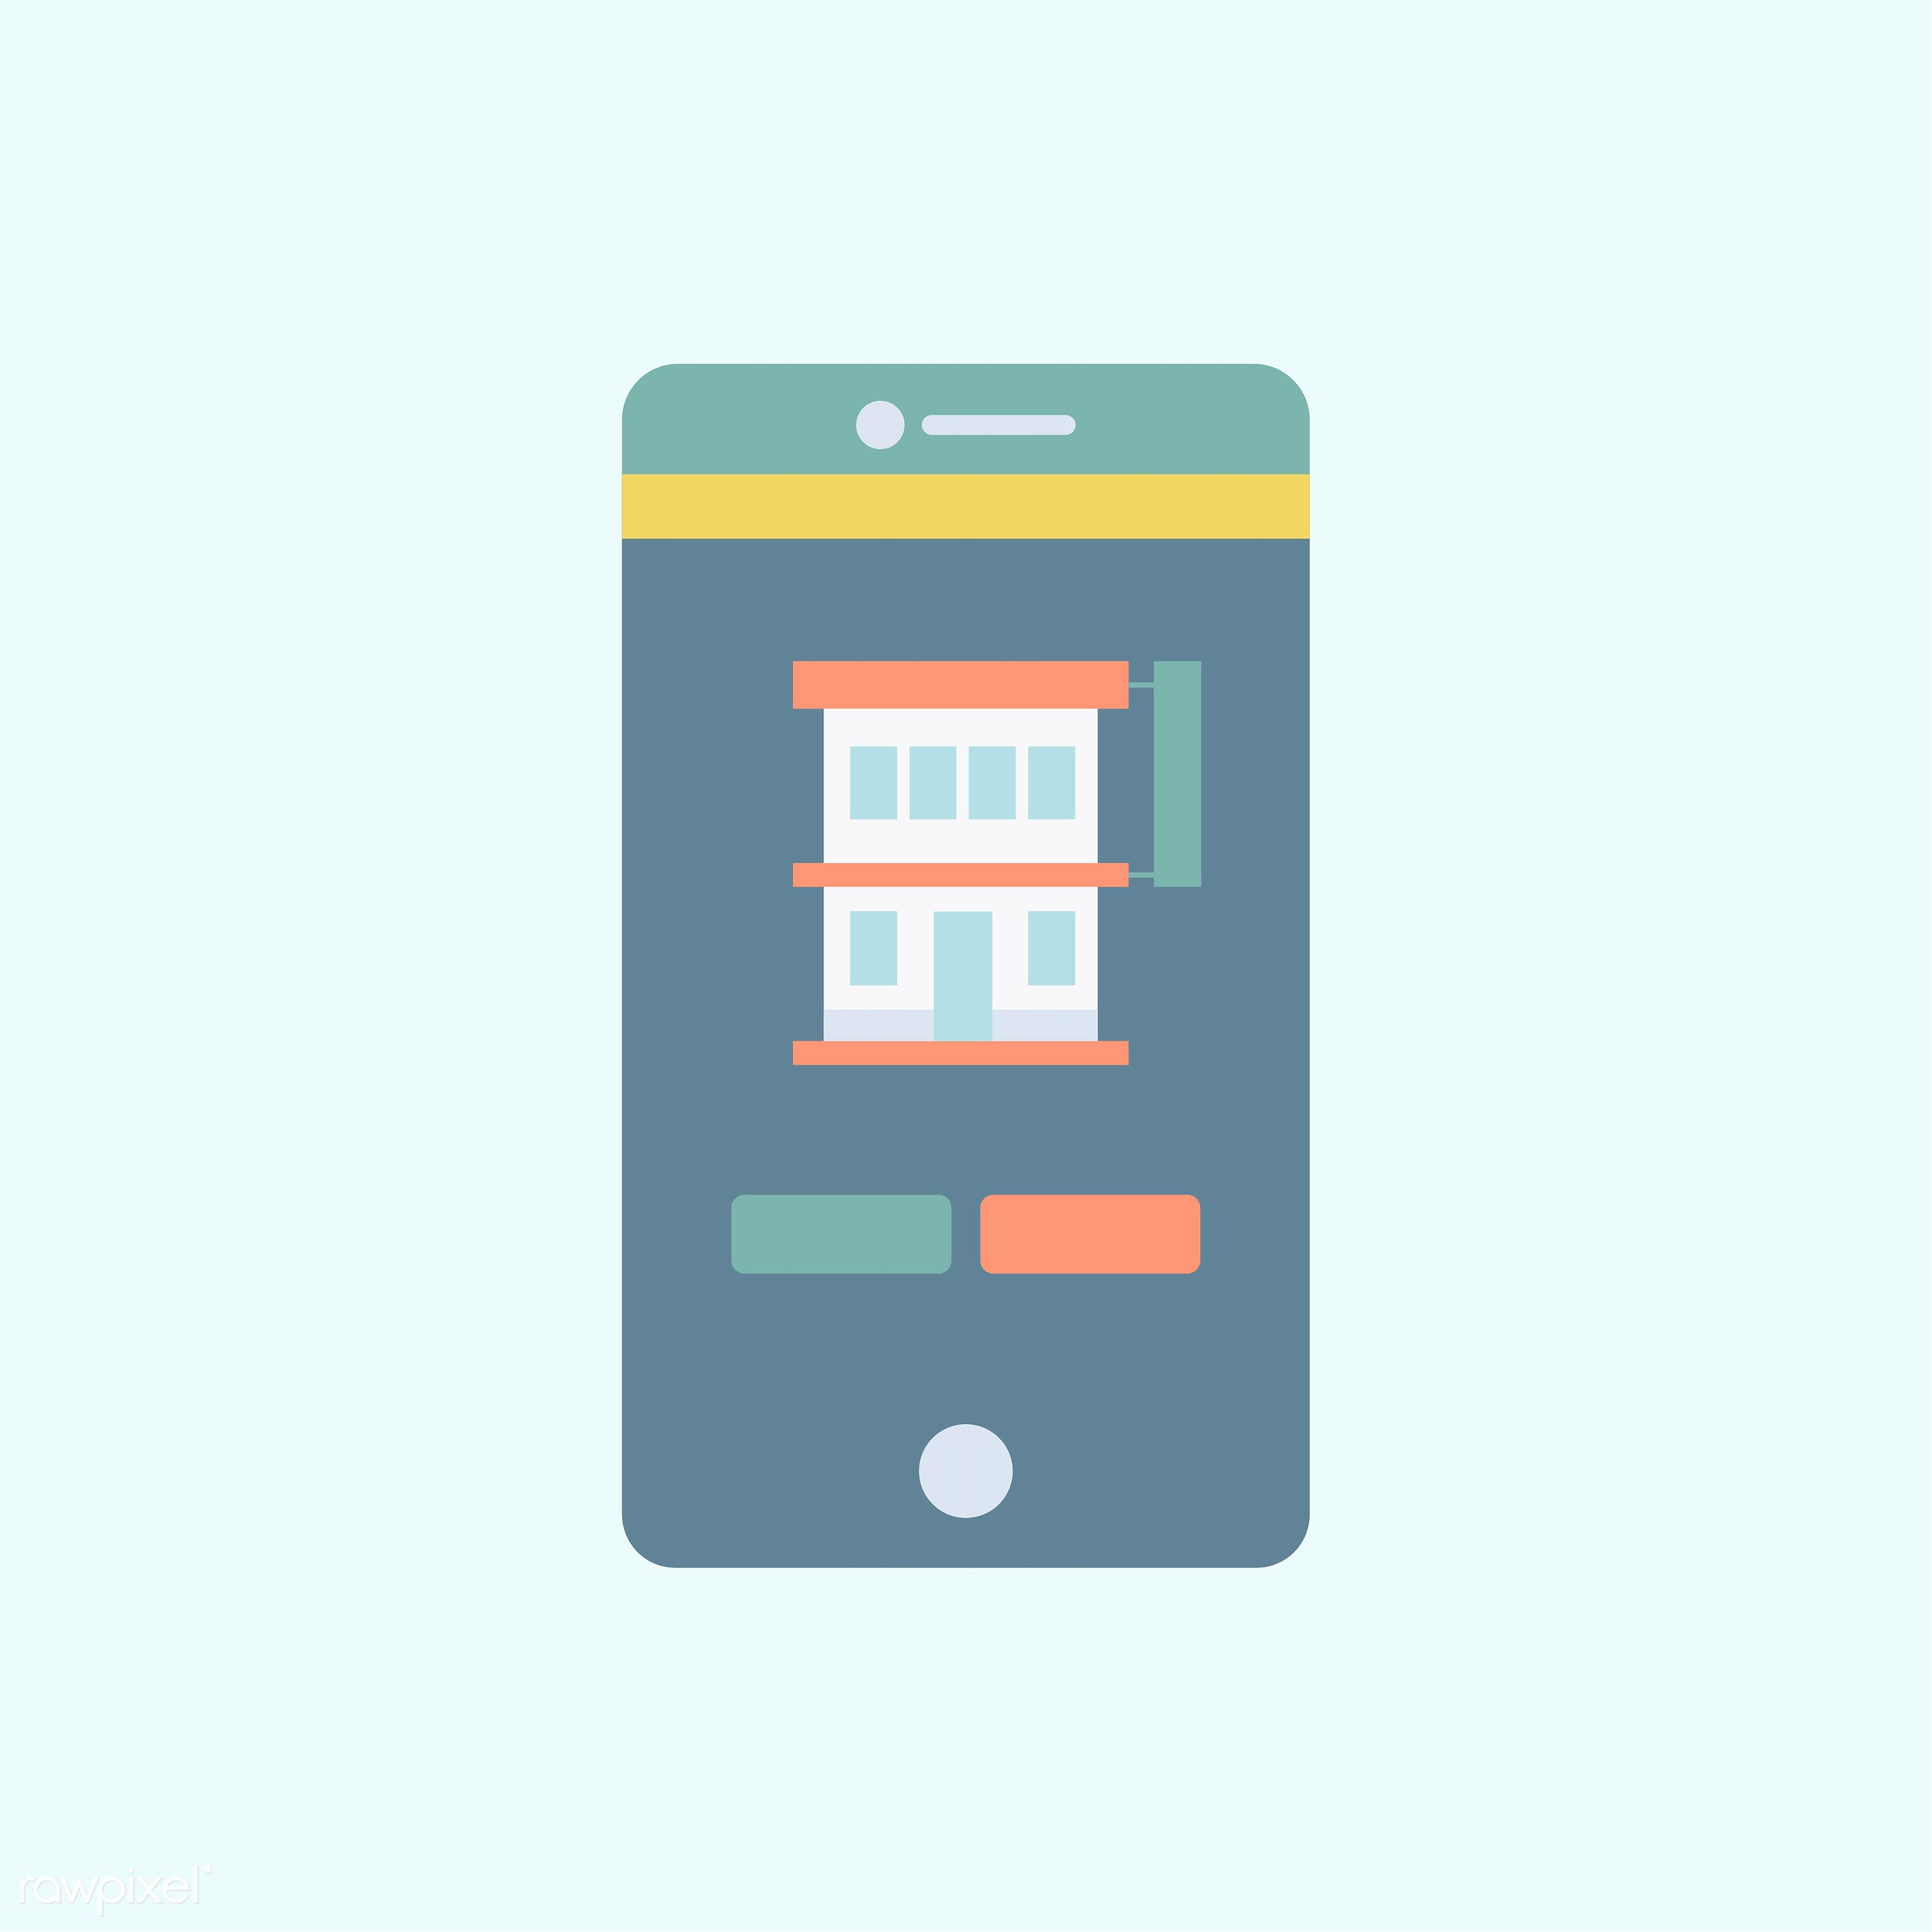 vector, illustration, graphic, blue, tech, technology, smartphone, mobile, app, connection, wireless